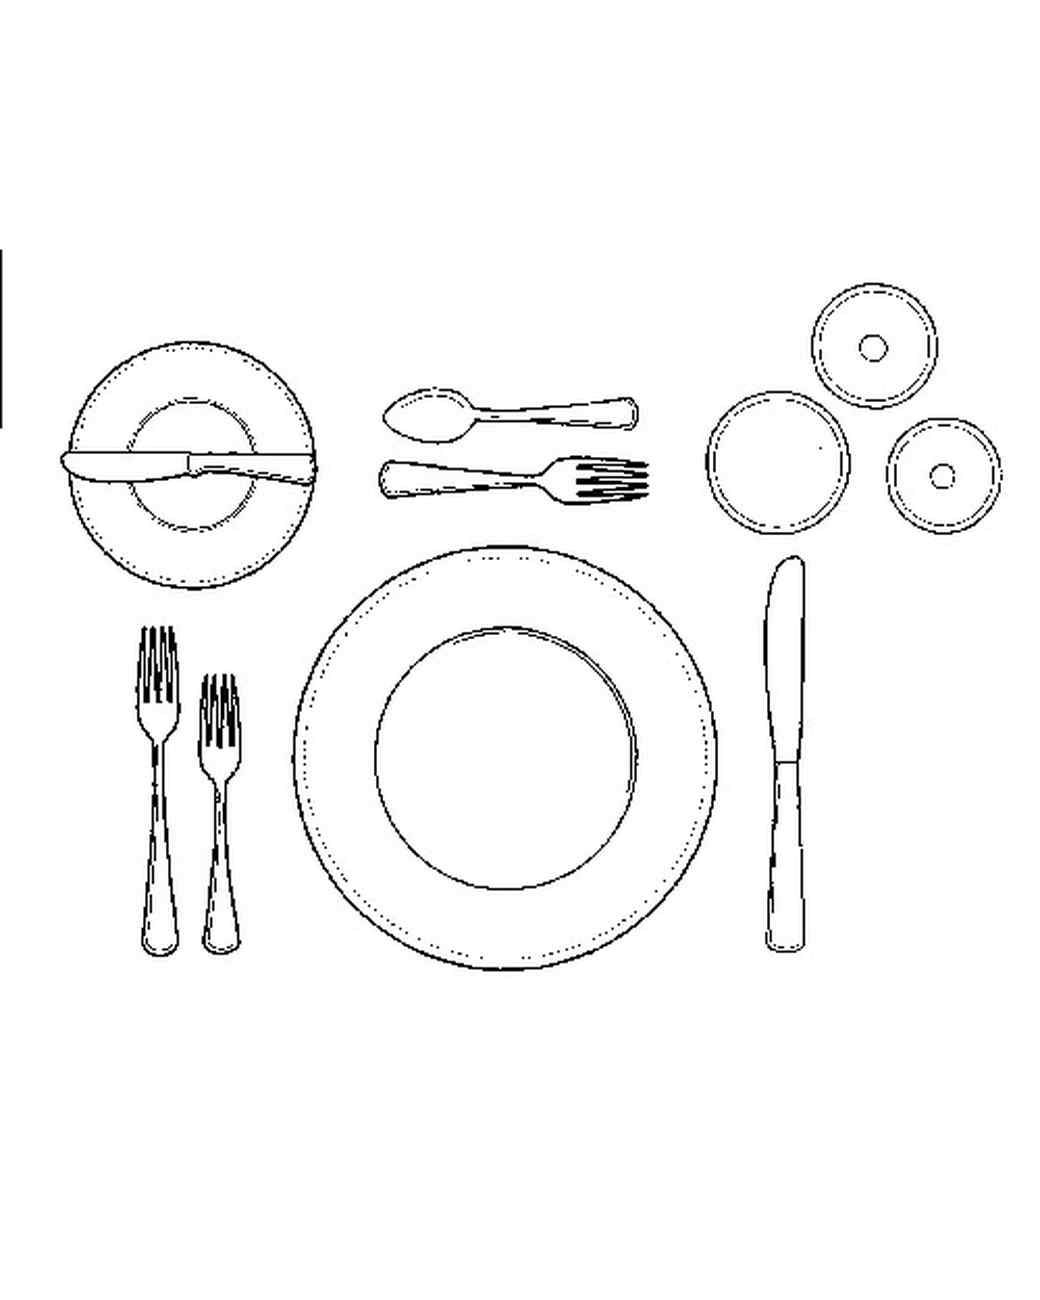 ml012p5_1200_main_placesetting_illus.jpg